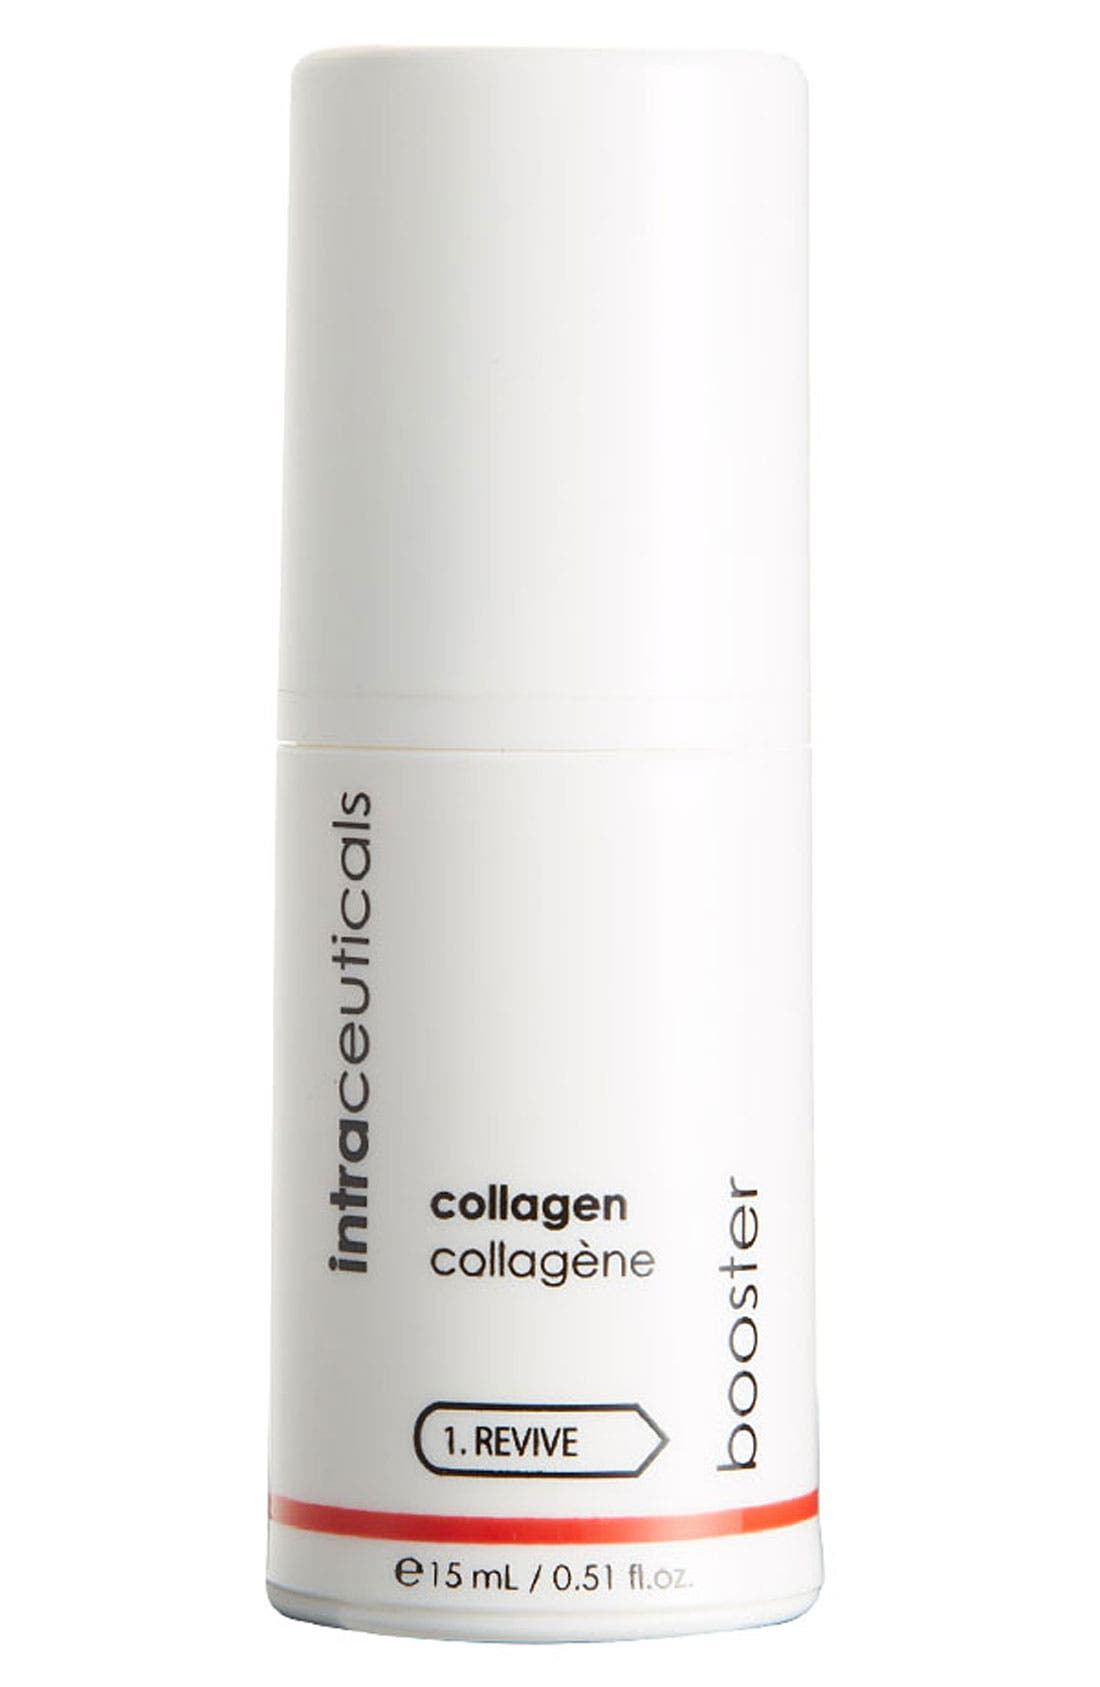 intraceuticals® 'Booster' Collagen Serum